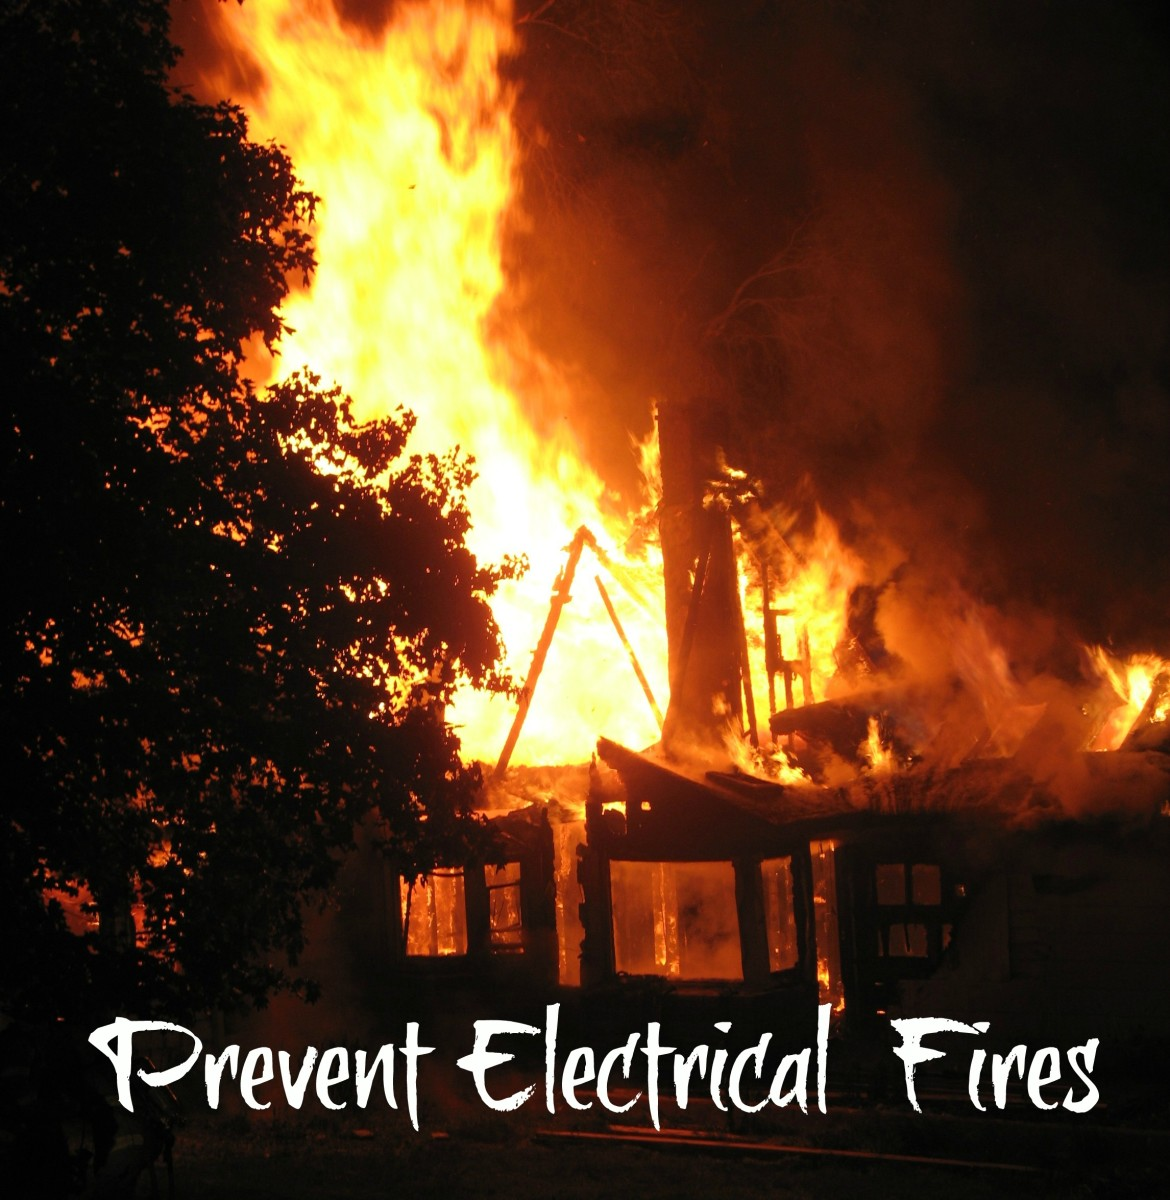 Home electrical fires are preventable, but each year produces thousands of such fires.  Don't let it happen to you, particularly in the Christmas season as cords and lights are strung everywhere.